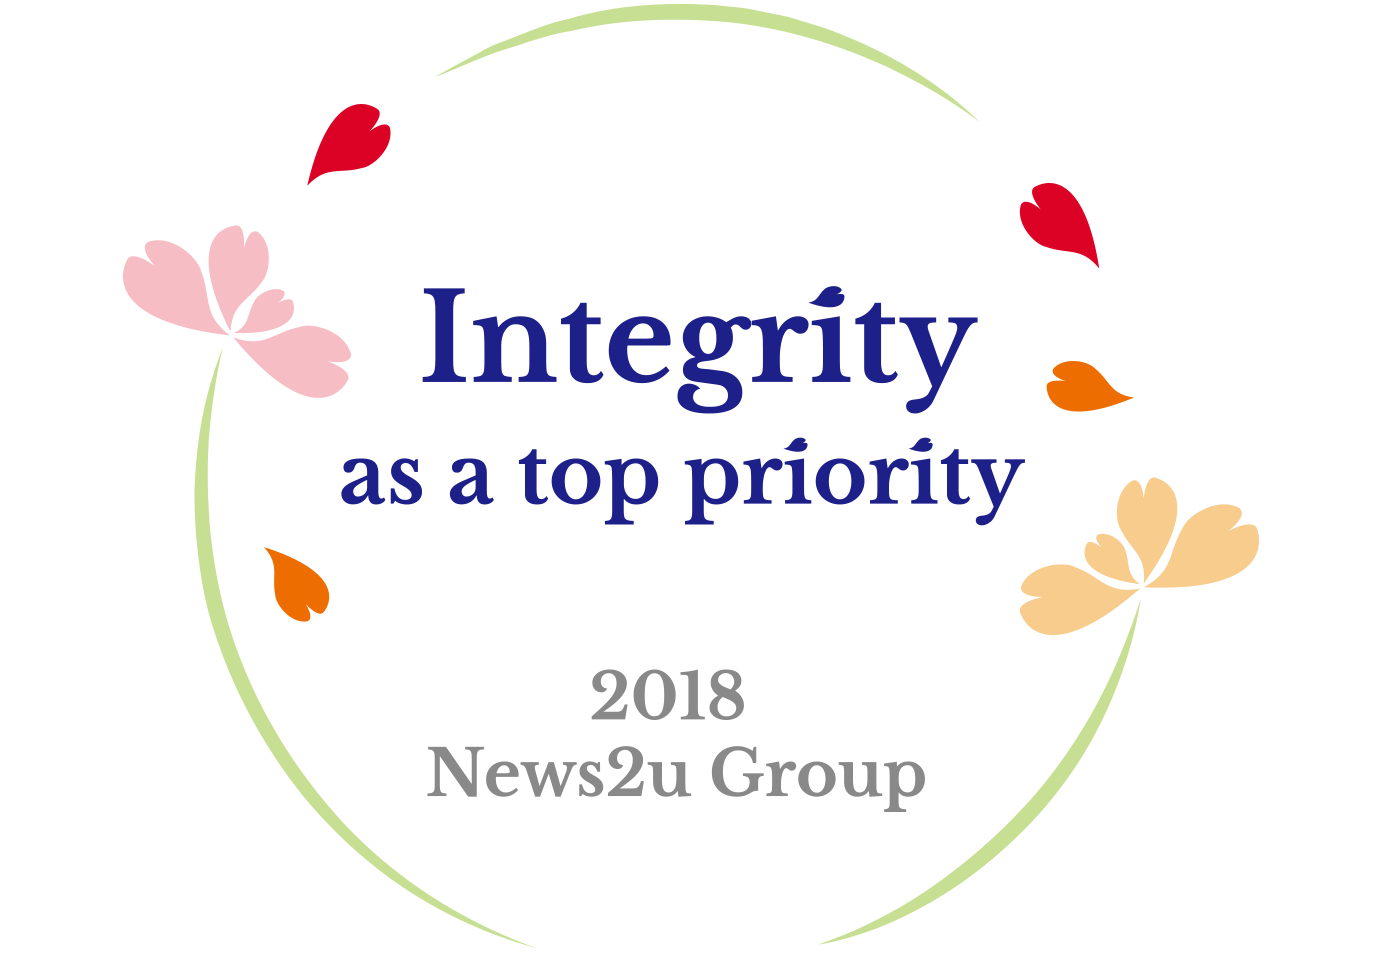 Integrity as a top priority